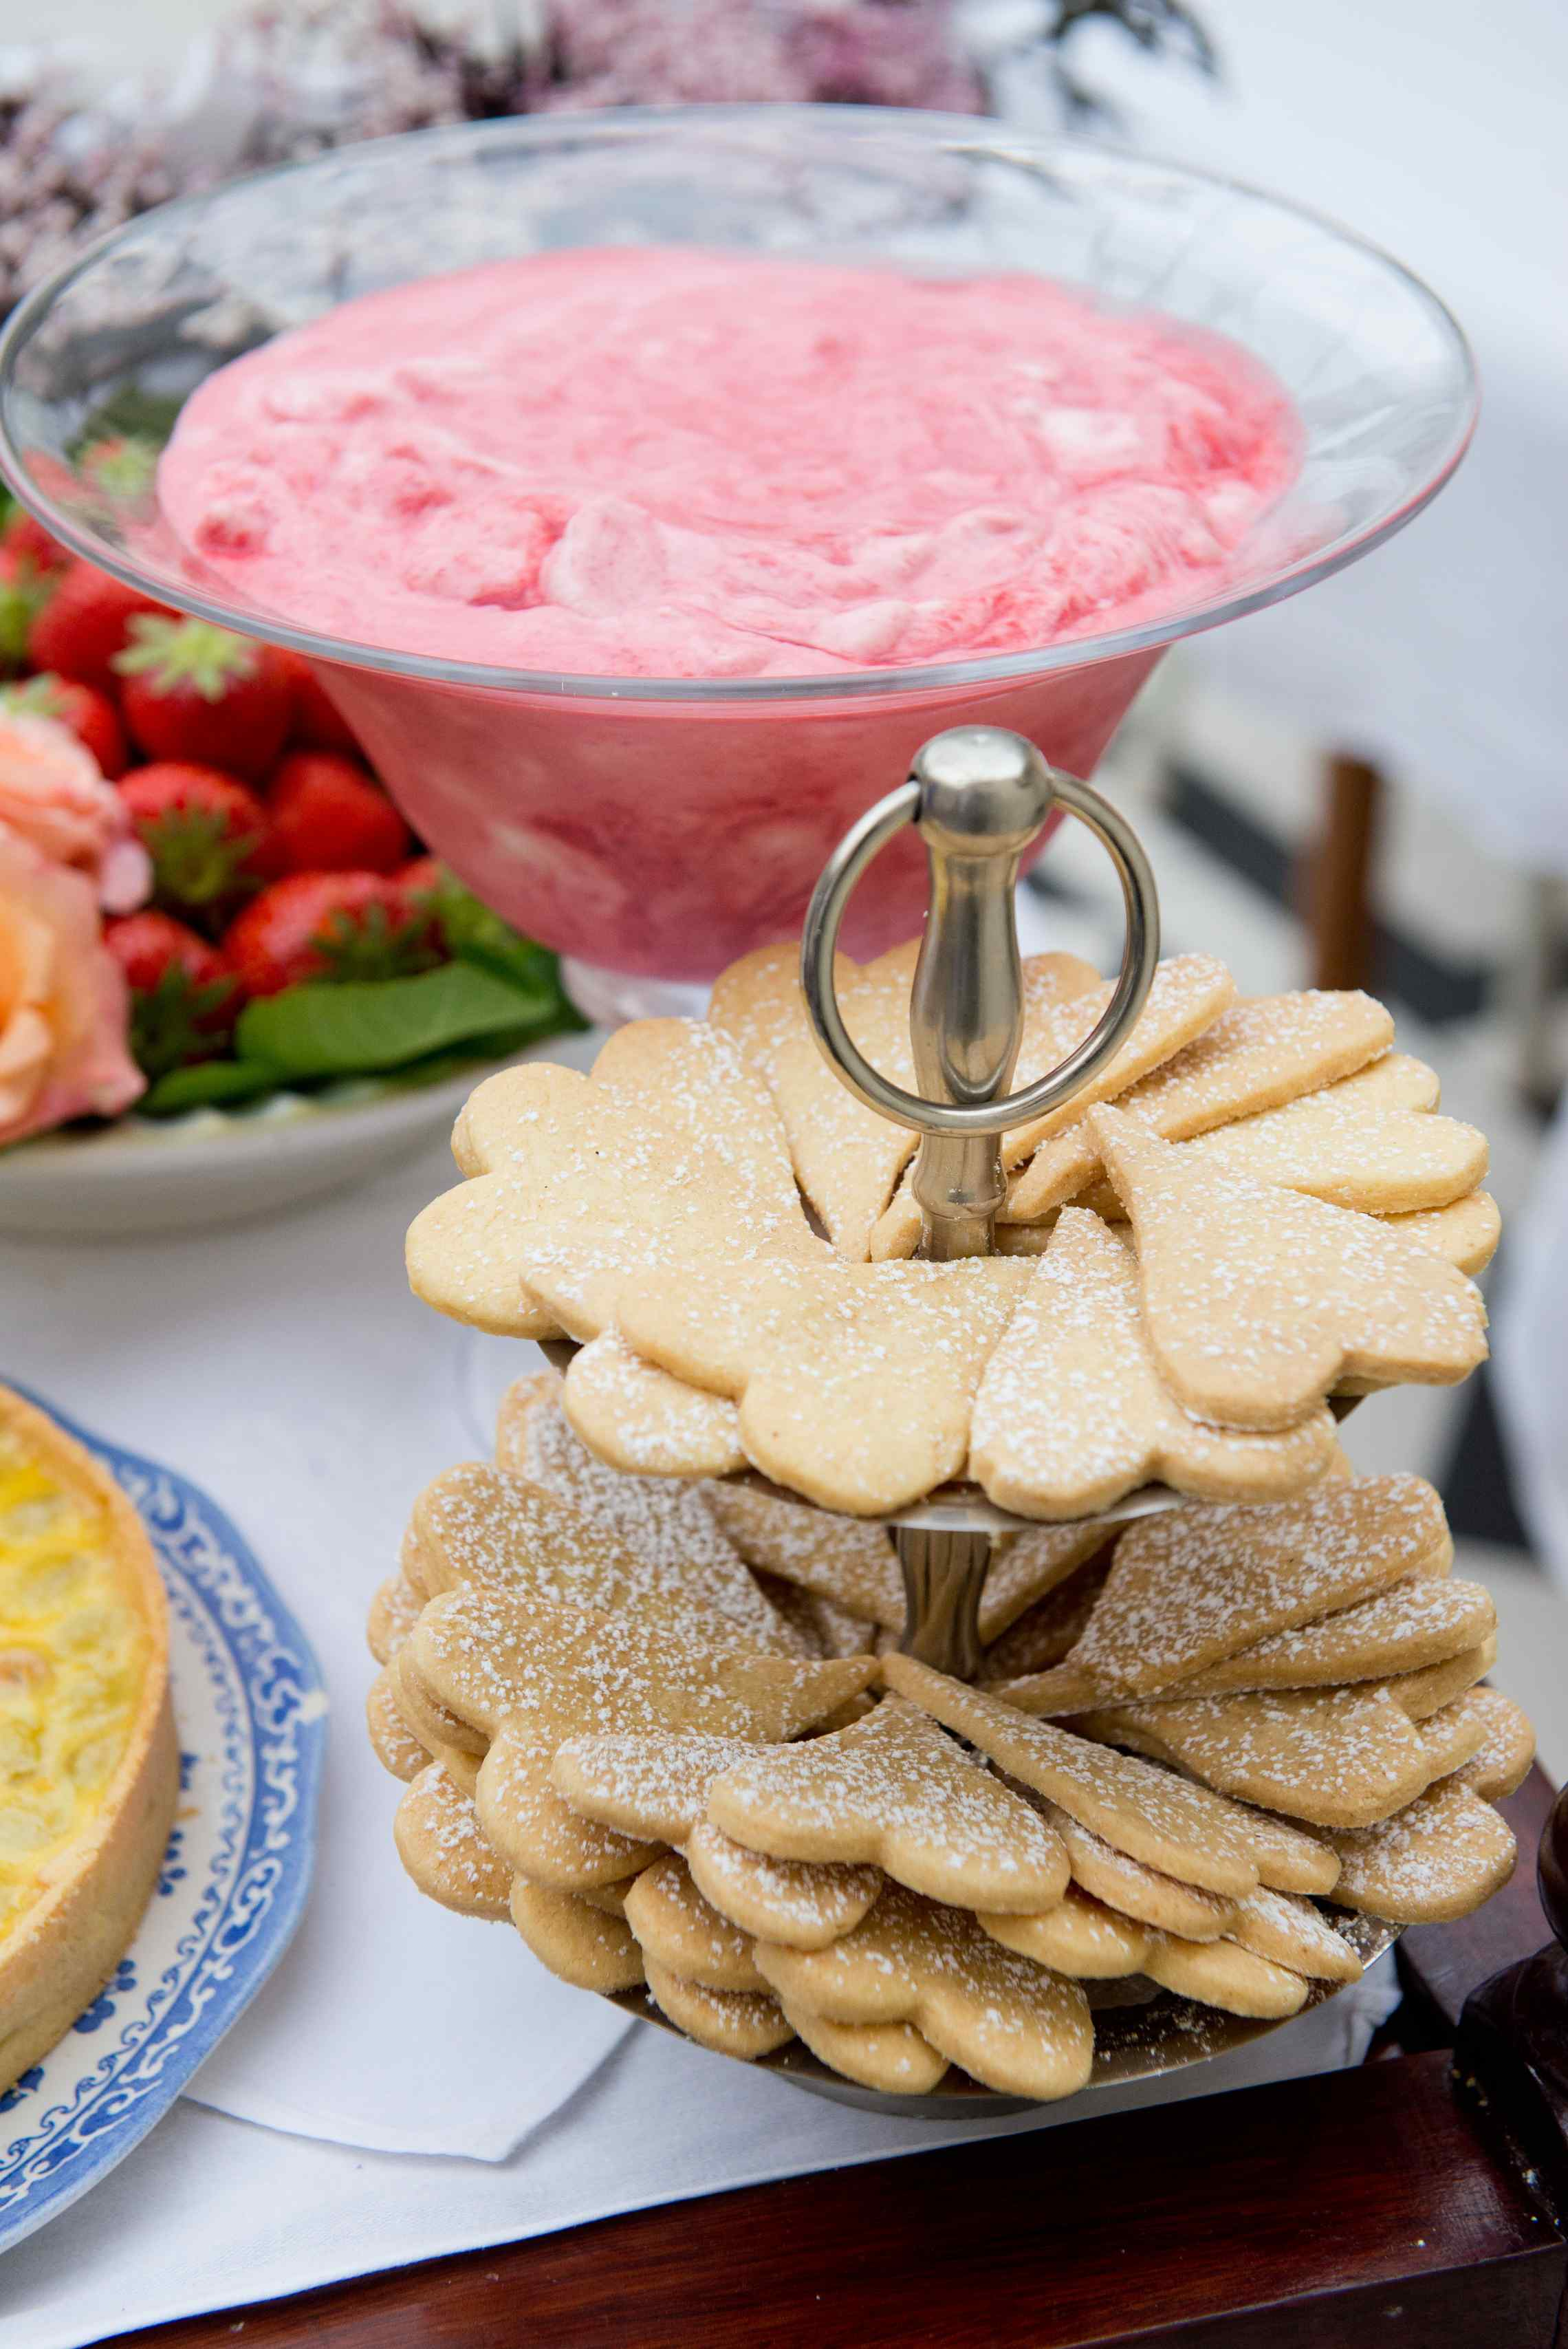 Rhubarb Fool served with Jane's Shortbread Biscuits